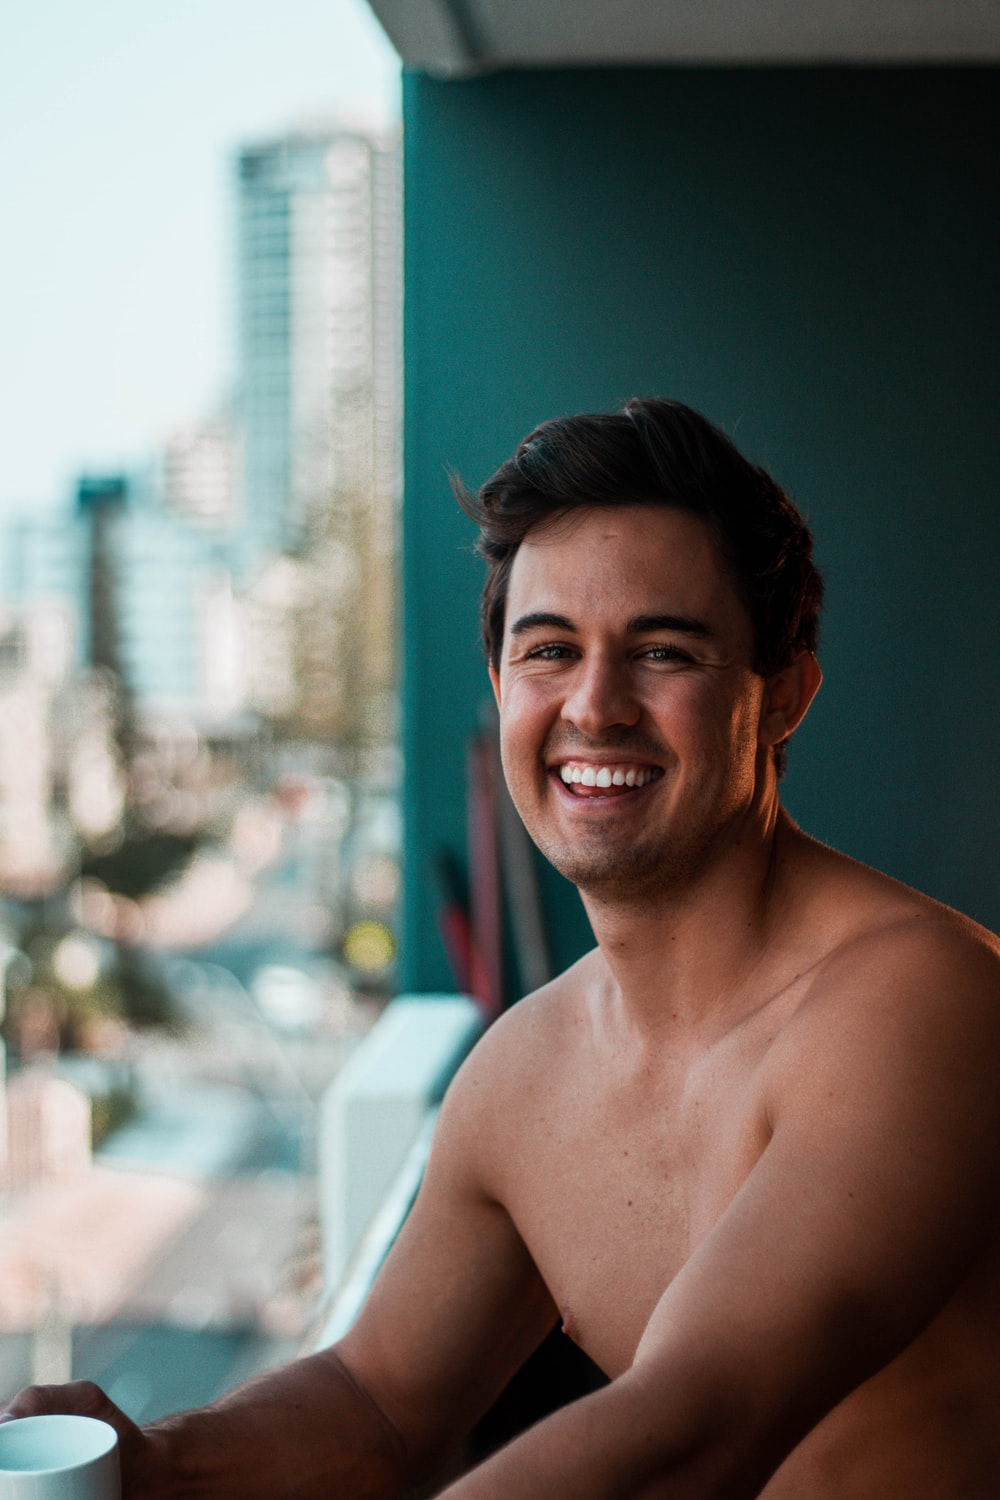 topless man smiling on focus photography